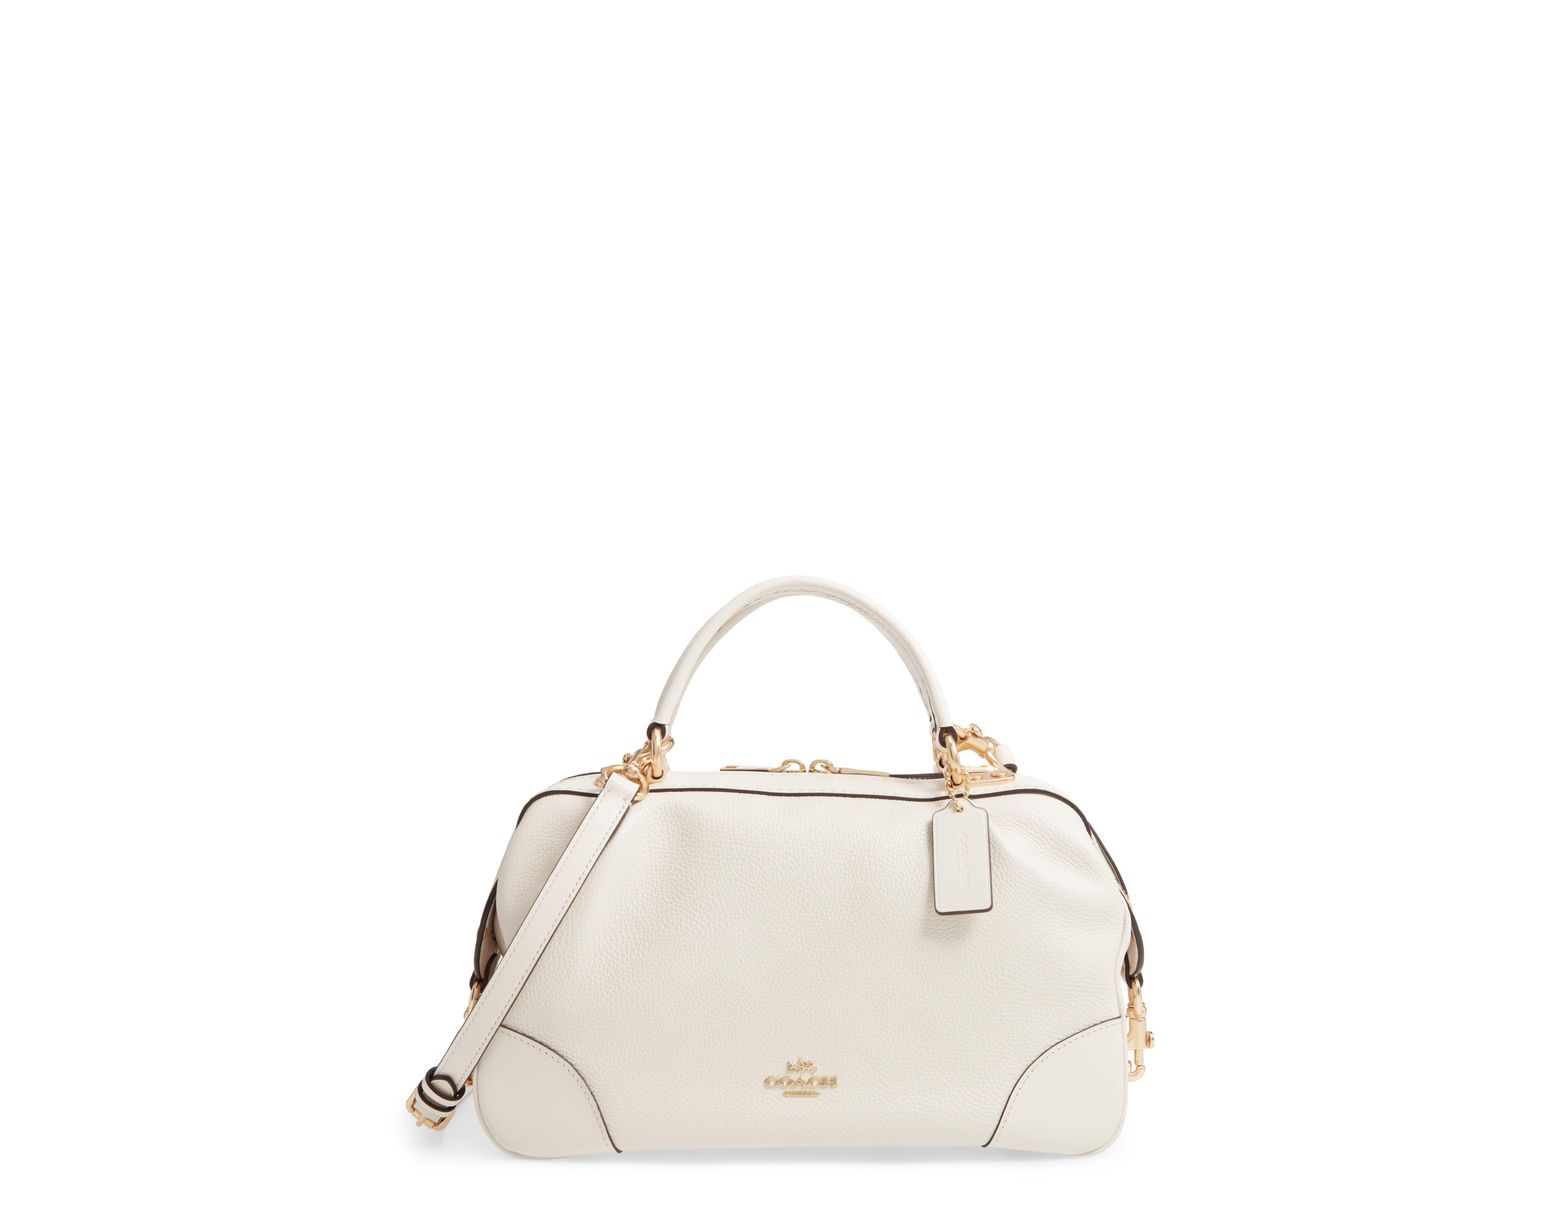 483d1af3eb COACH Aidy Leather Satchel in Natural - Lyst